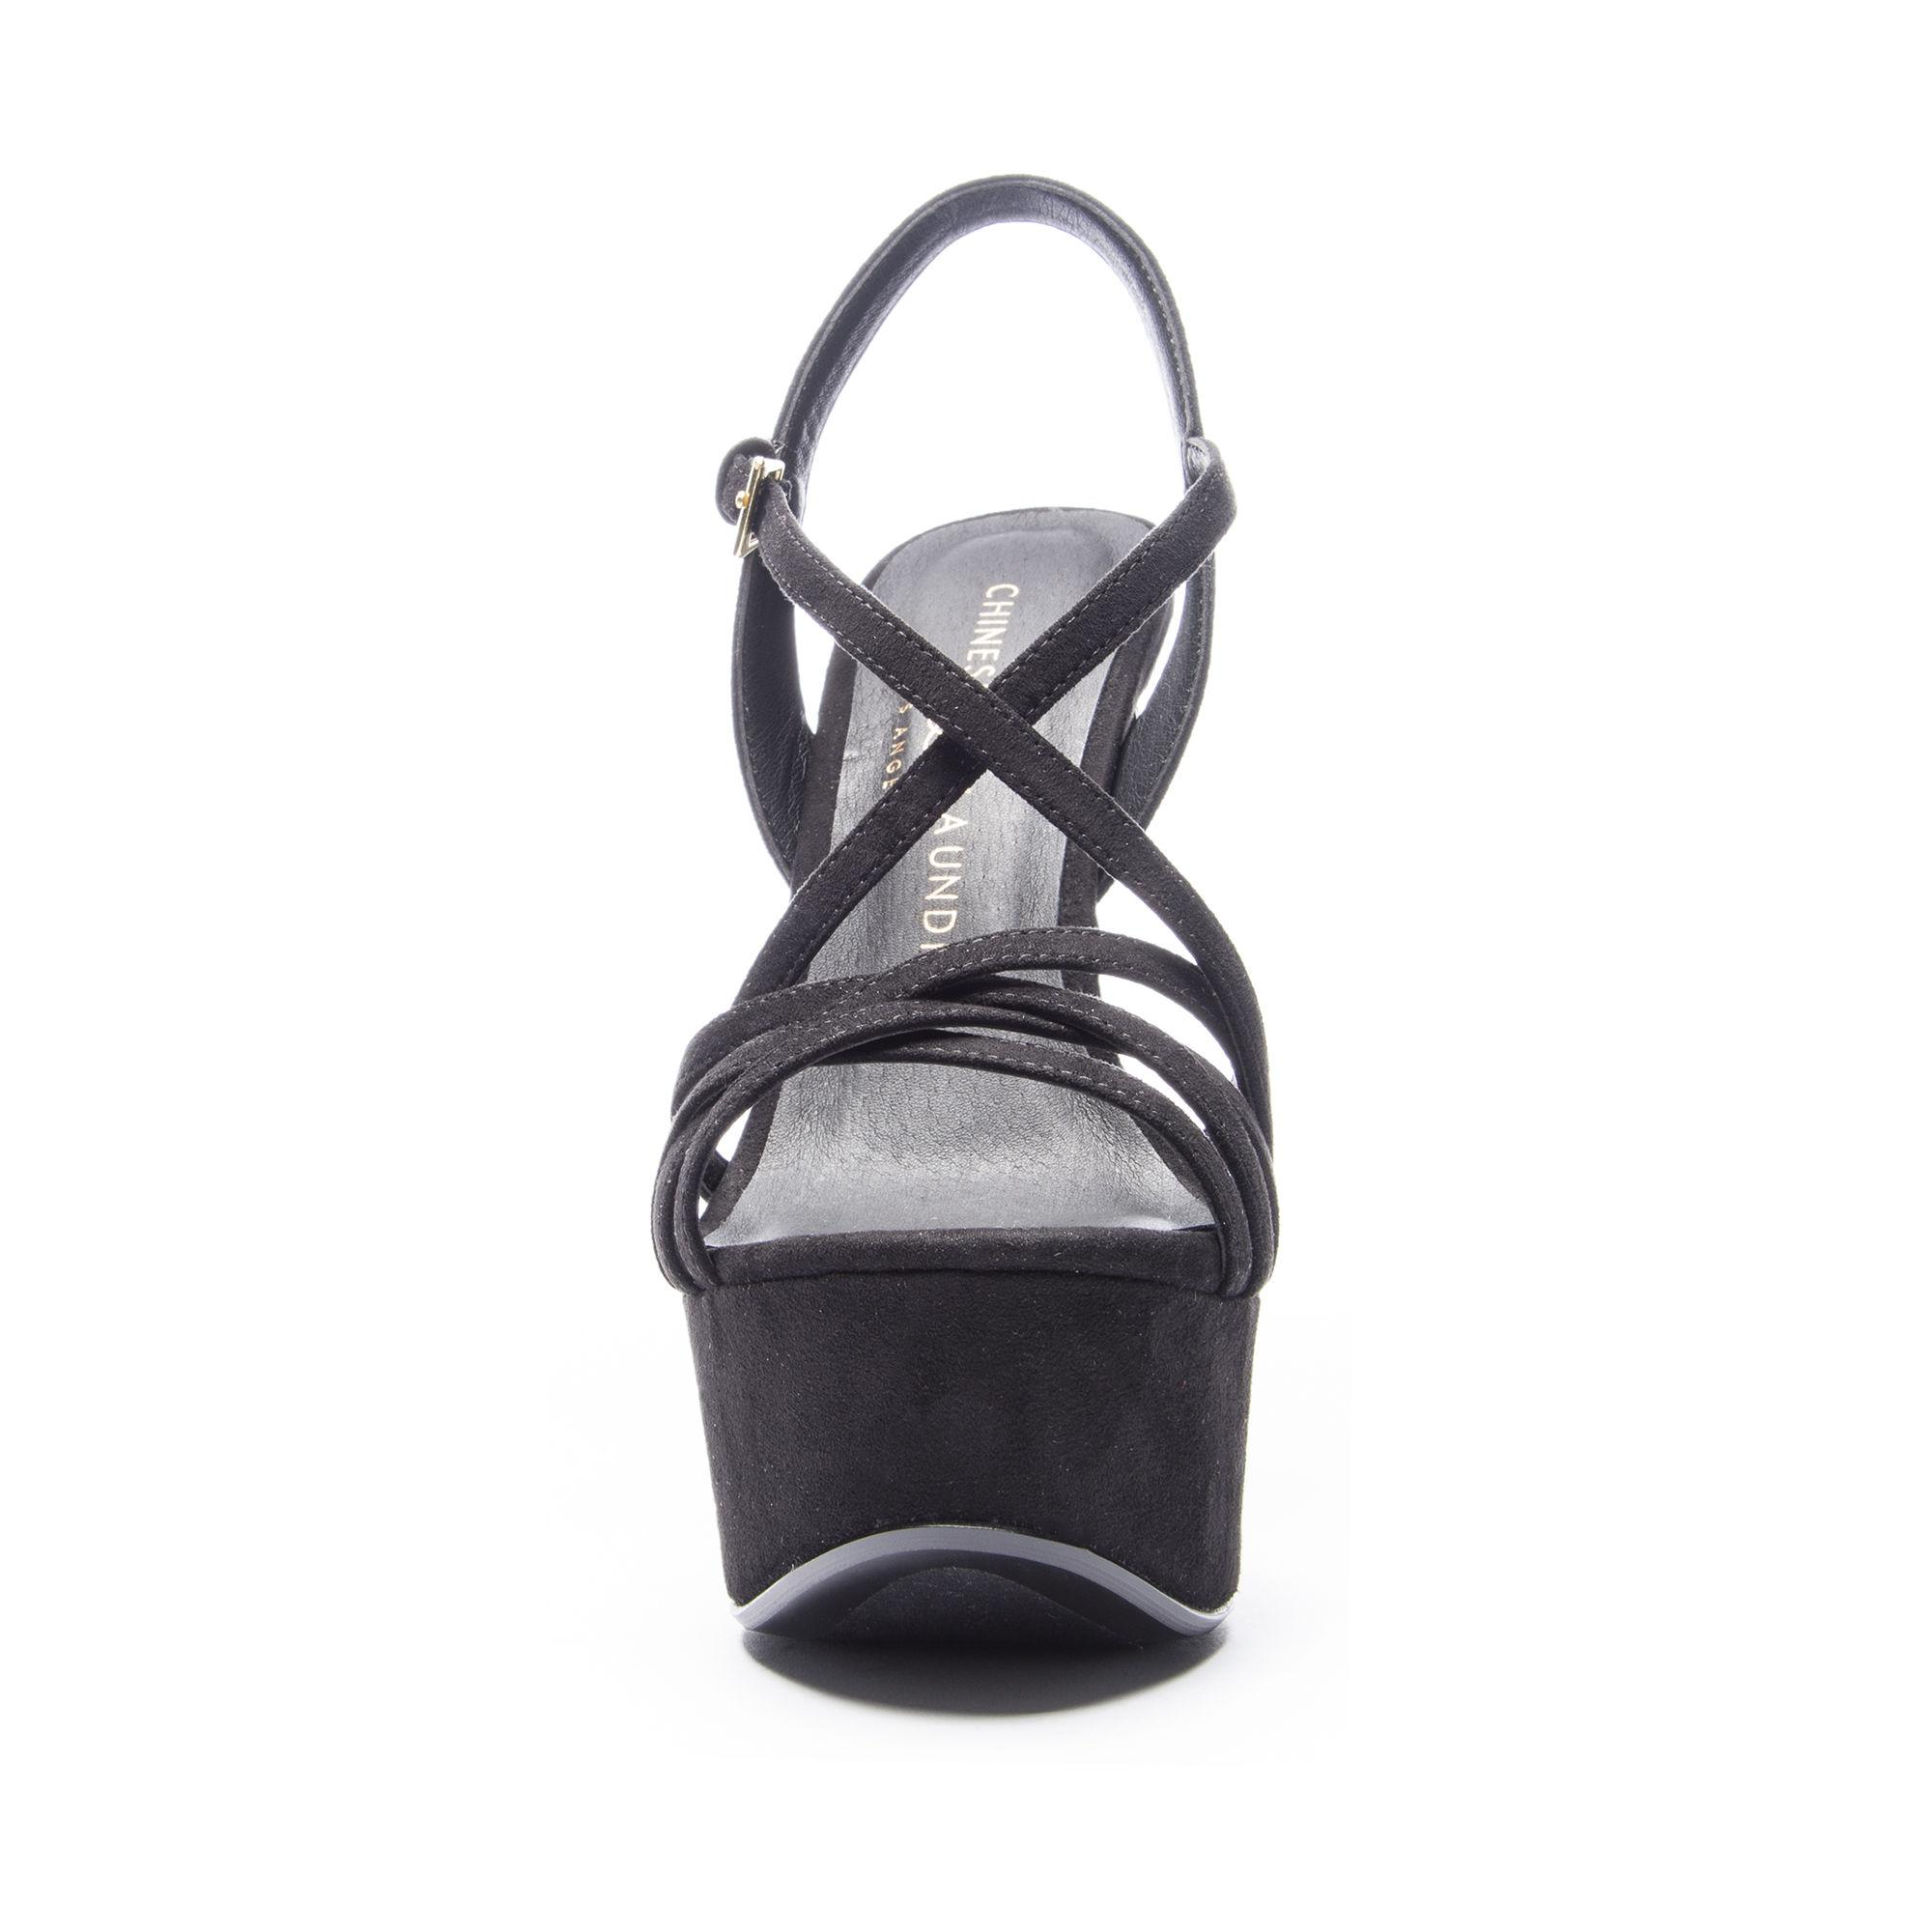 a0bc61991d0 Lyst - Chinese Laundry Teaser2 Platform Sandal in Black